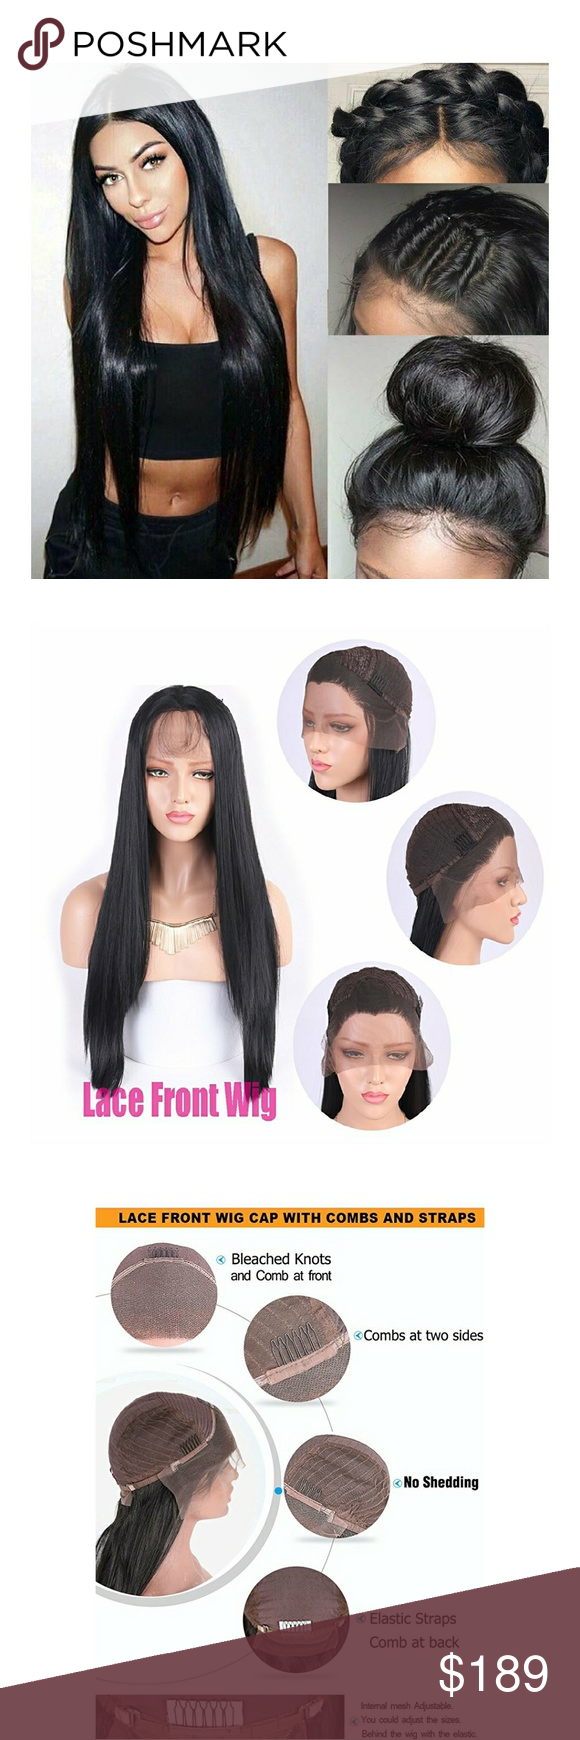 Flash Sale Beautiful Lace Front Wig Medium Cap Soft Lace Parts Back 2 3 Inches From Ear To Ear Human Hair Blend 90 Wigs Lace Front Wigs Synthetic Hair